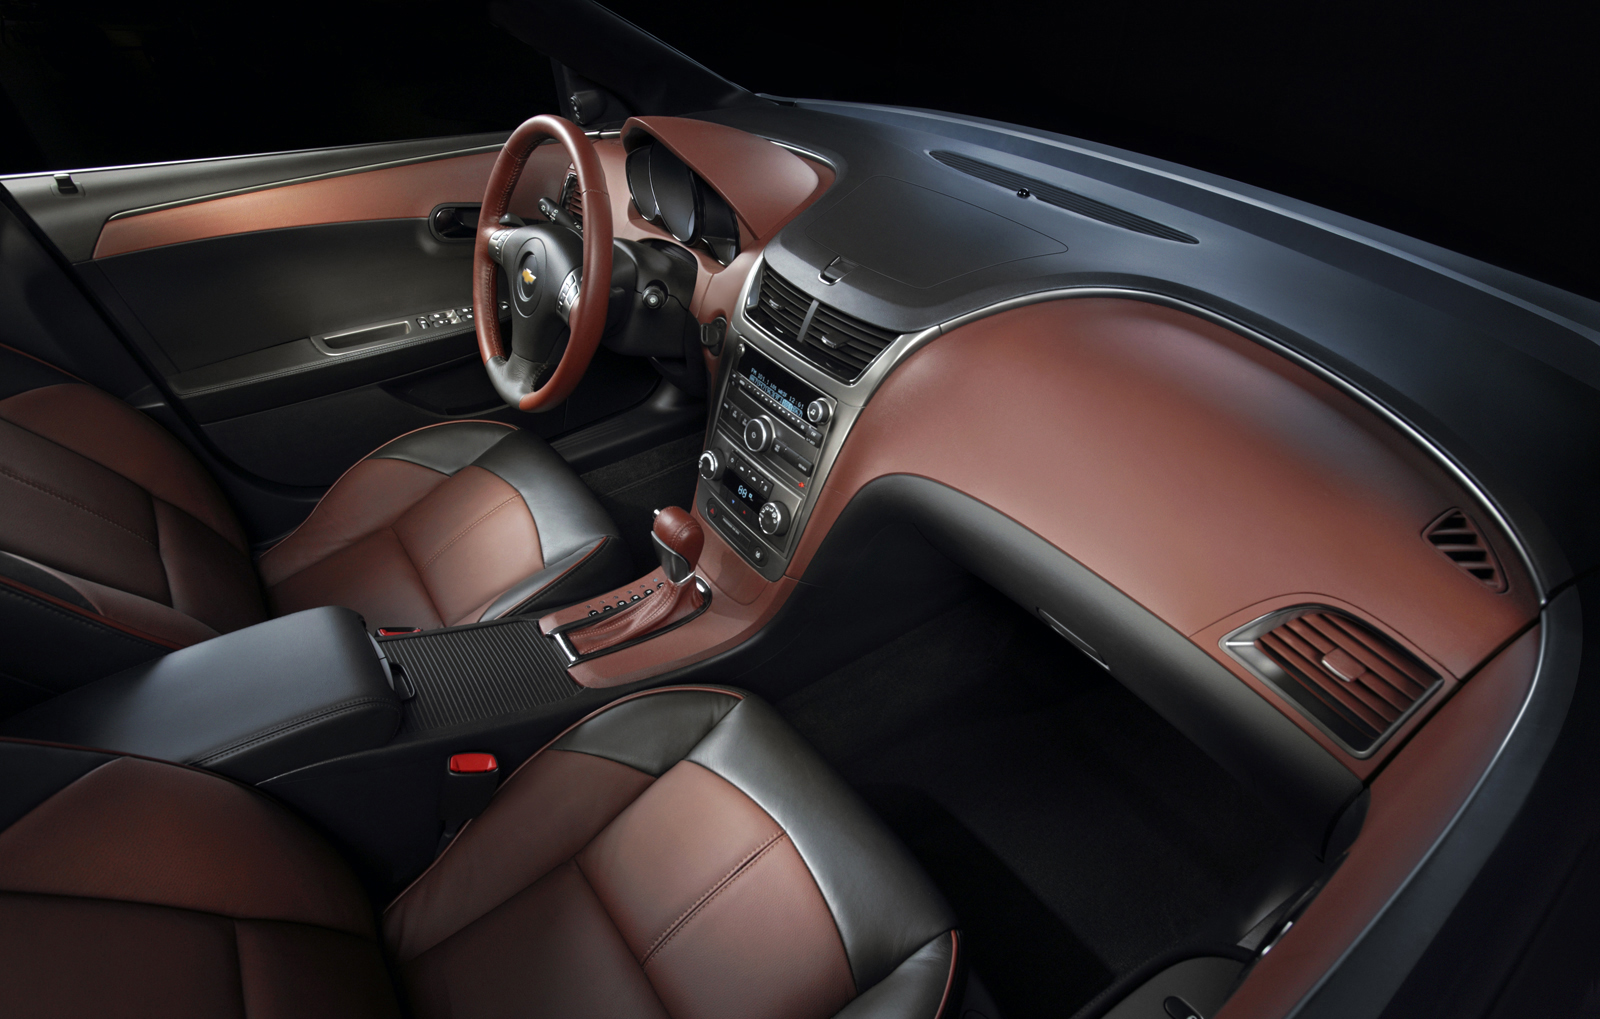 Are Mercedes C class cars really ......? - Page 2